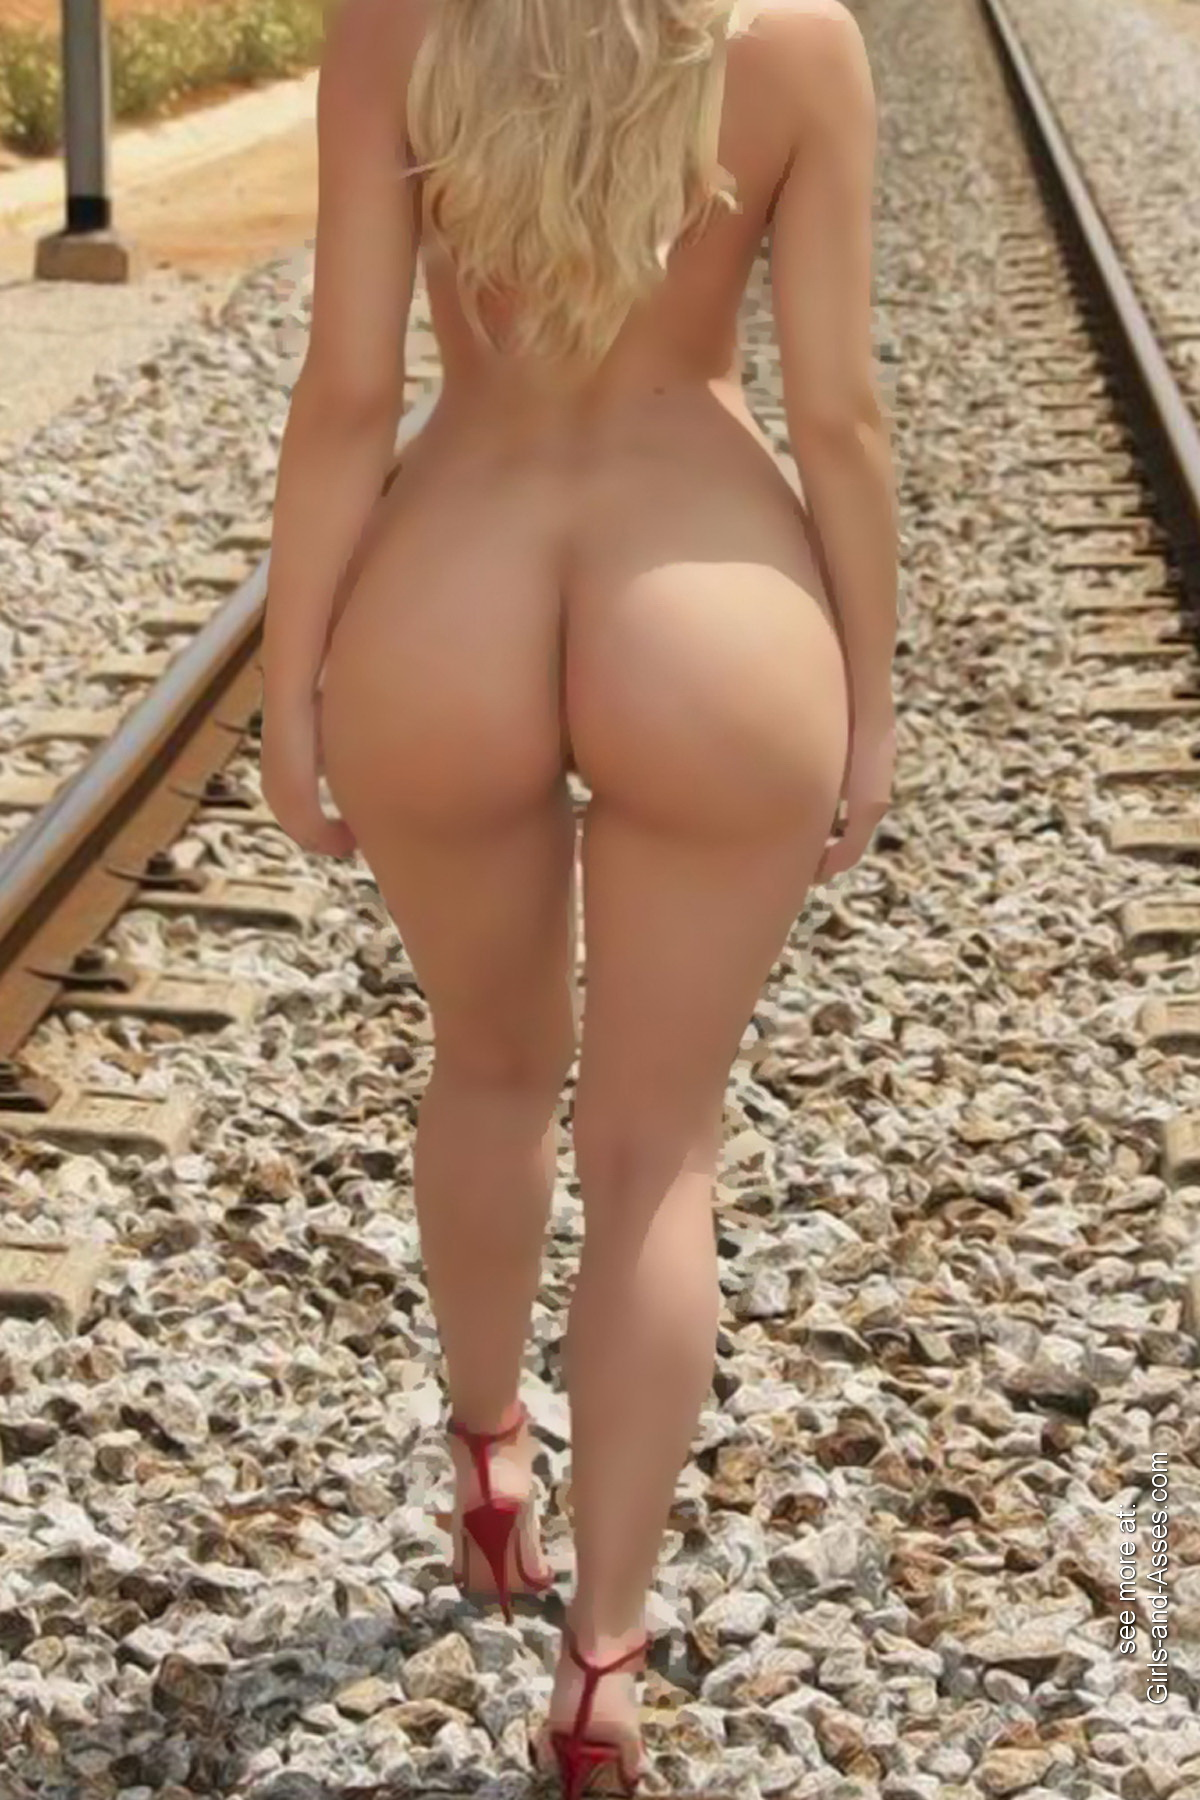 hot girl naked on the train tracks picture 00955